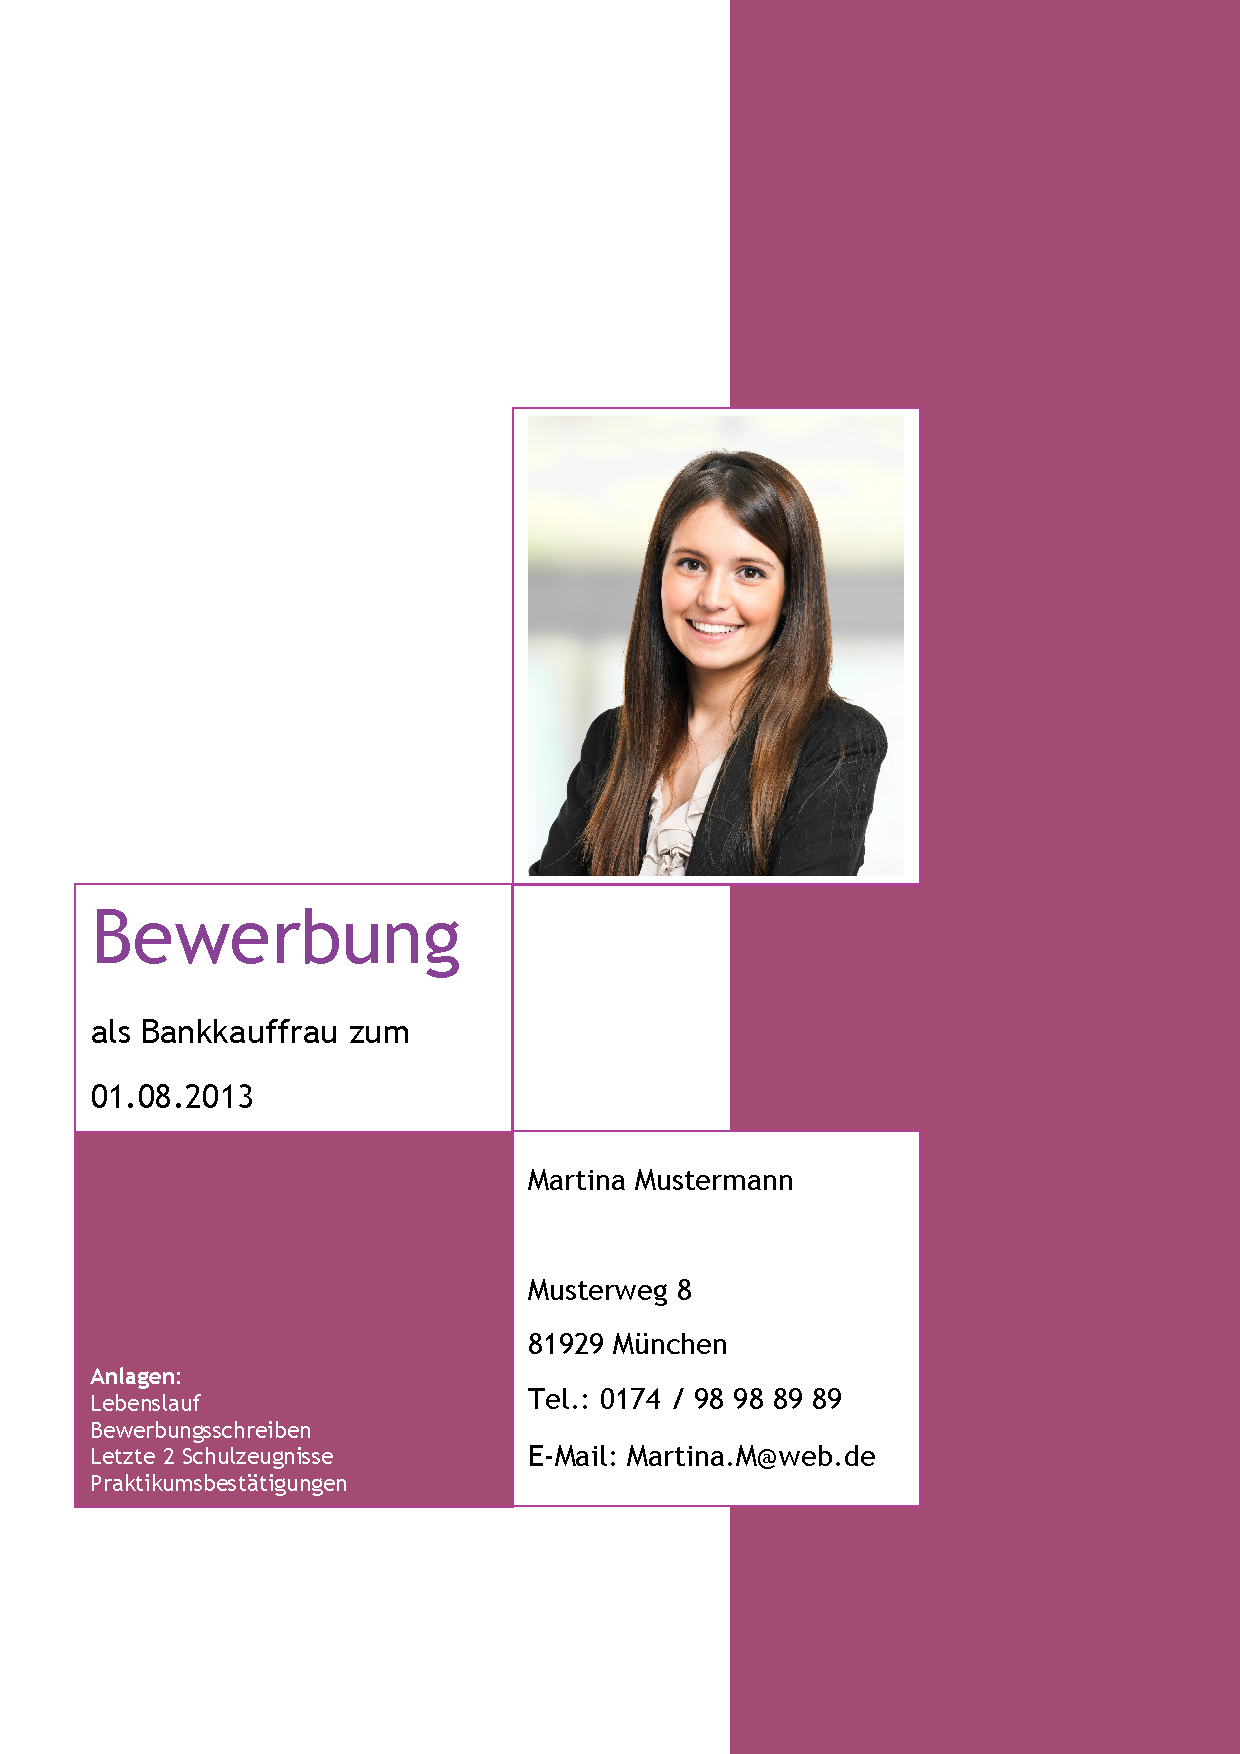 Bewerbung Deckblatt Muster | business women - Ideas | Pinterest ...